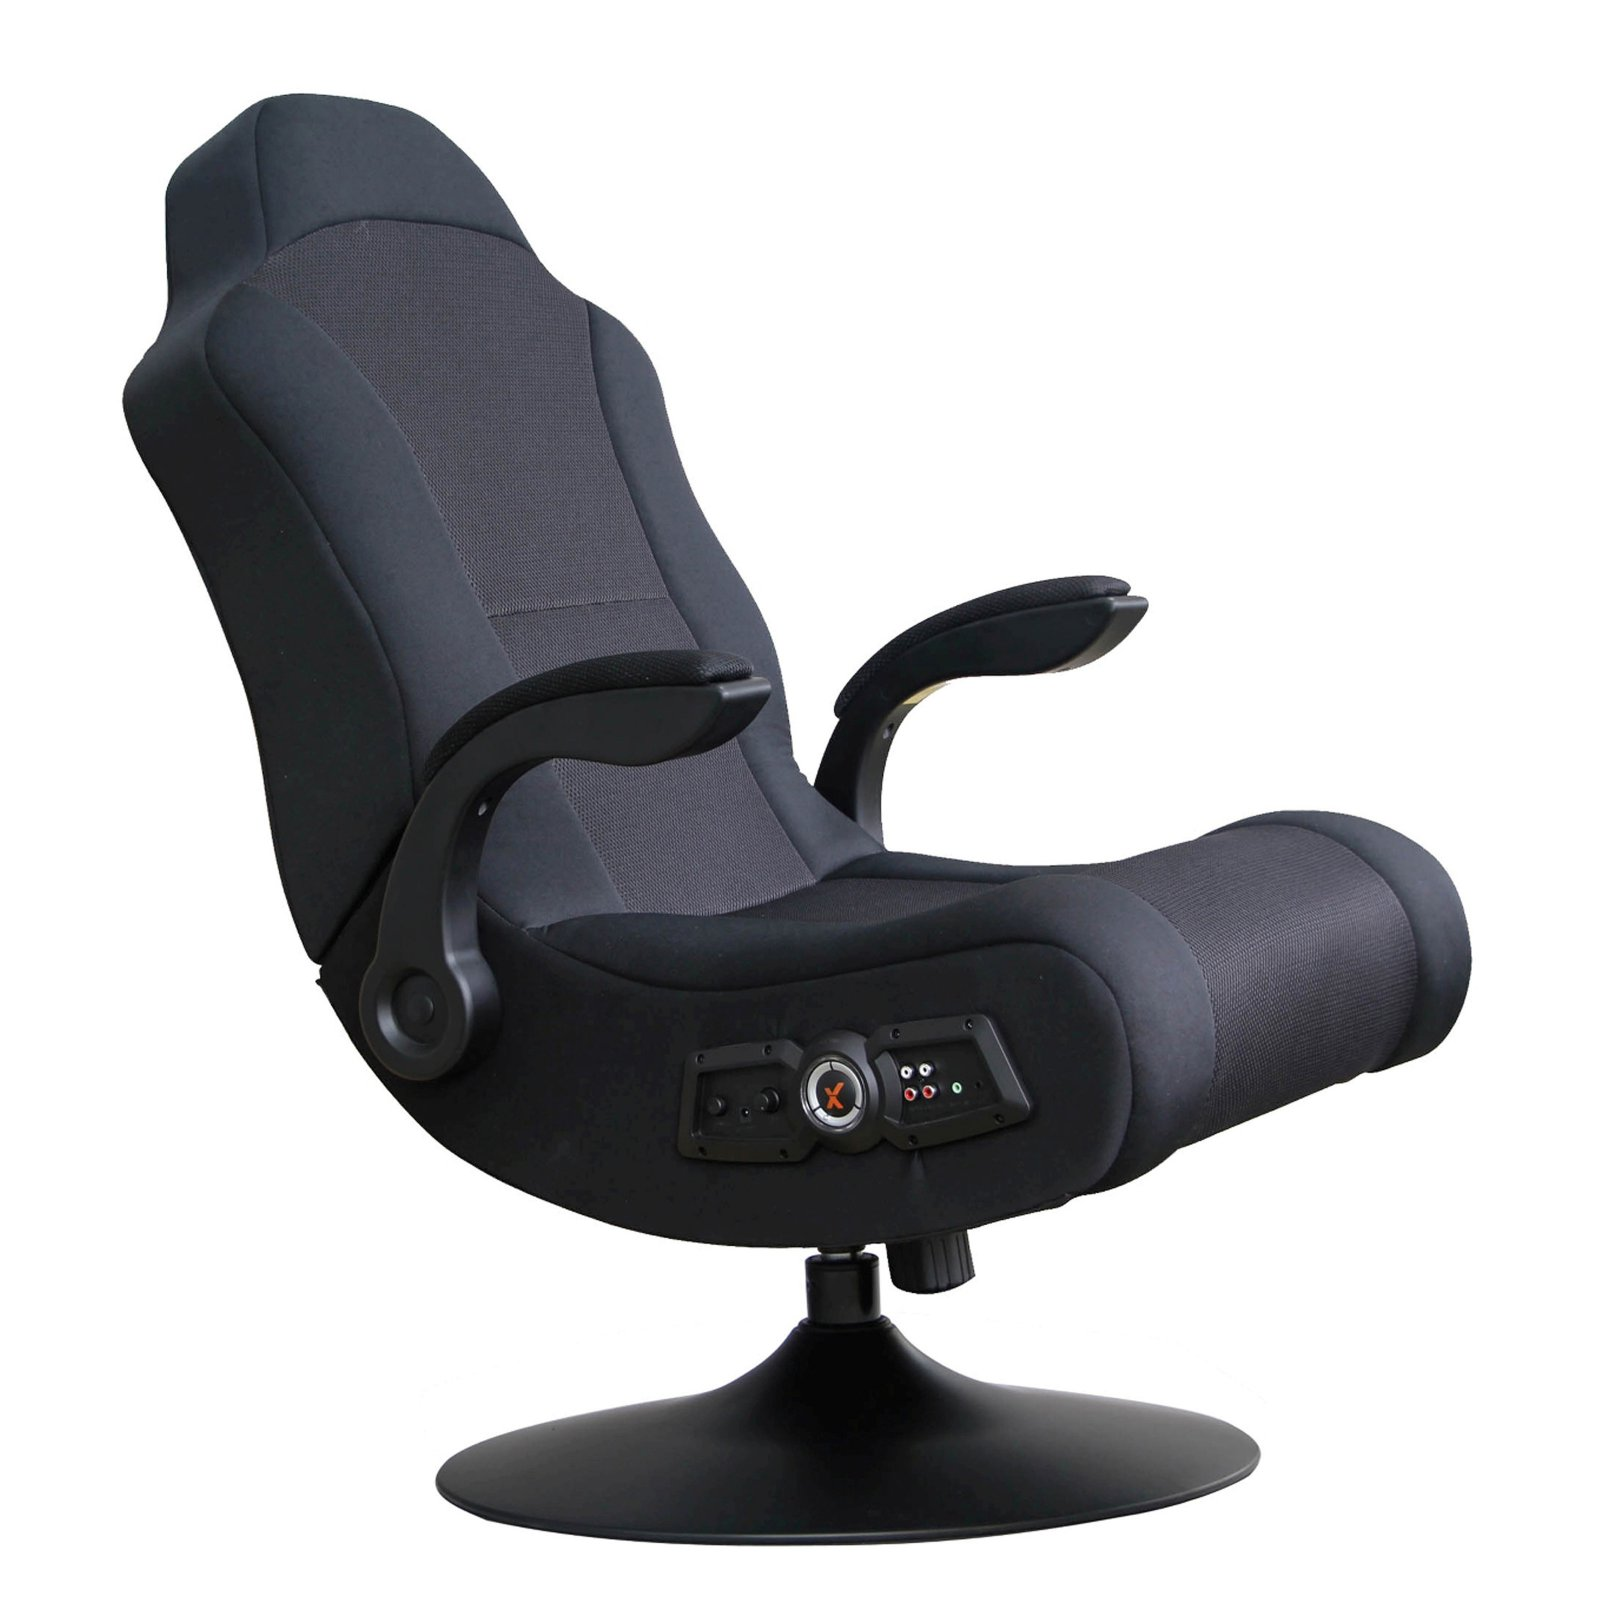 Pleasing X Rocker Commander Pedestal Video Game Chair With 2 1 Wired Uwap Interior Chair Design Uwaporg